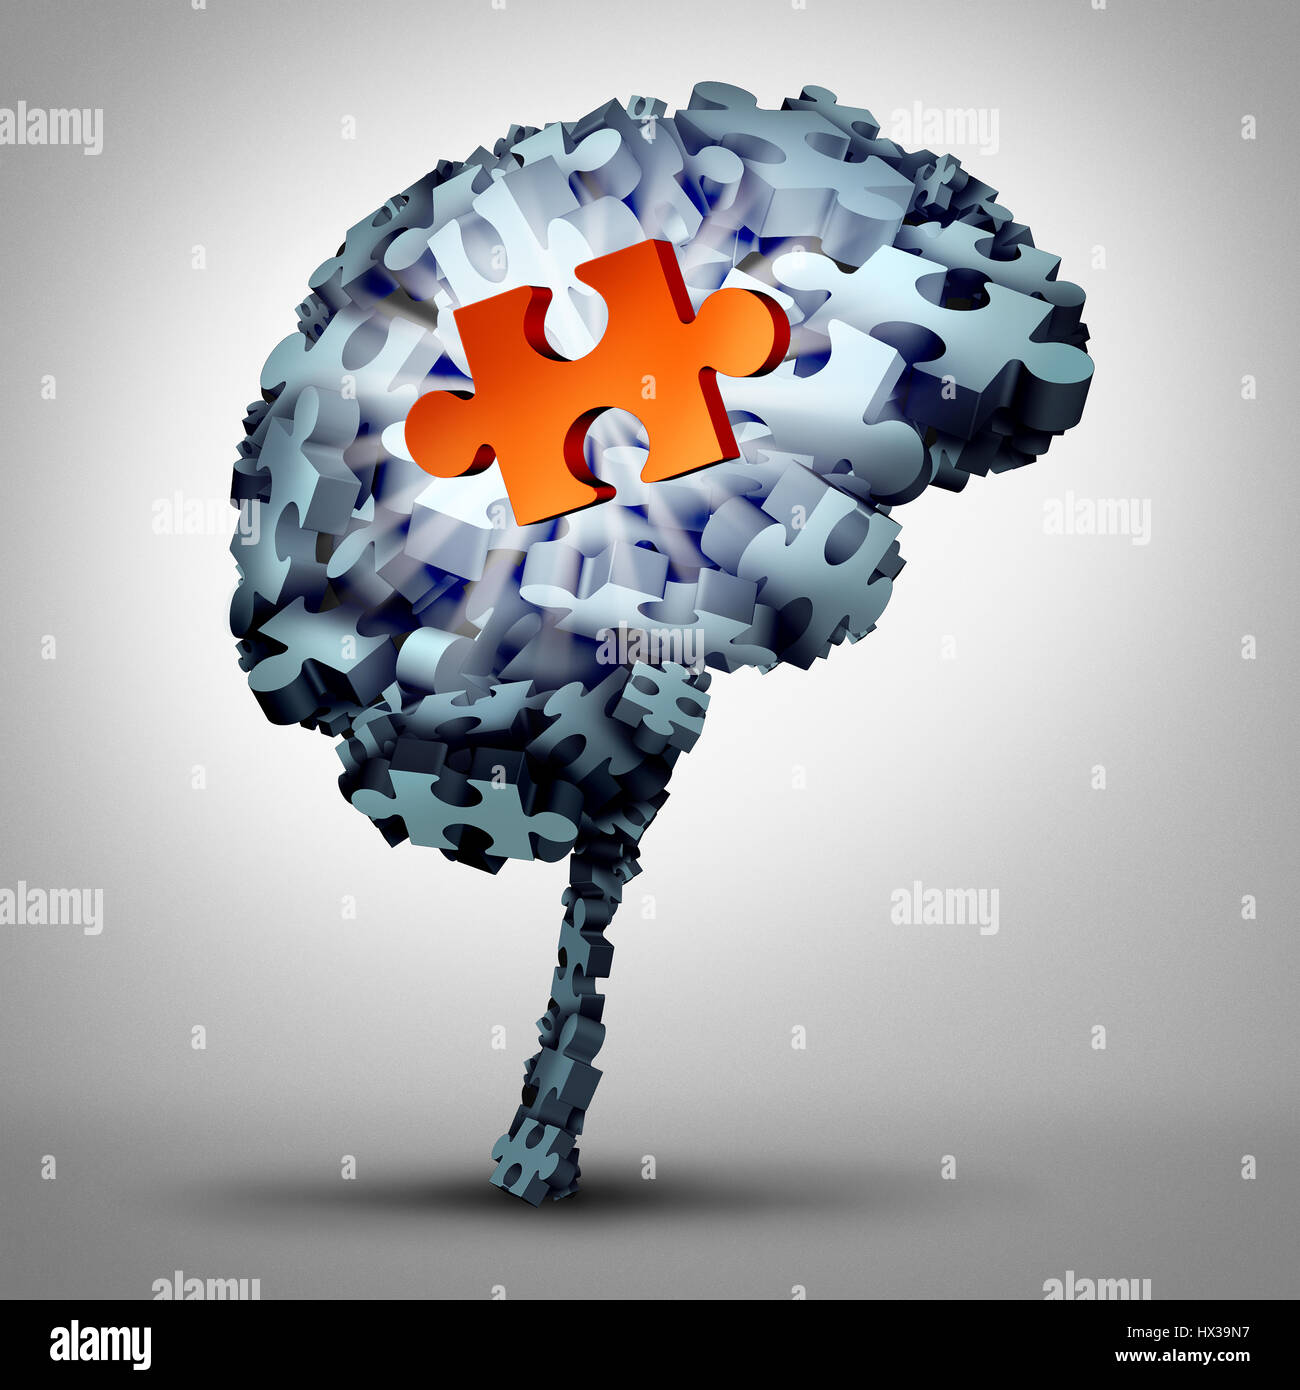 Brain puzzle solution as a human mind made of jigsaw pieces with one object as a glowing red symbol of inspiration - Stock Image